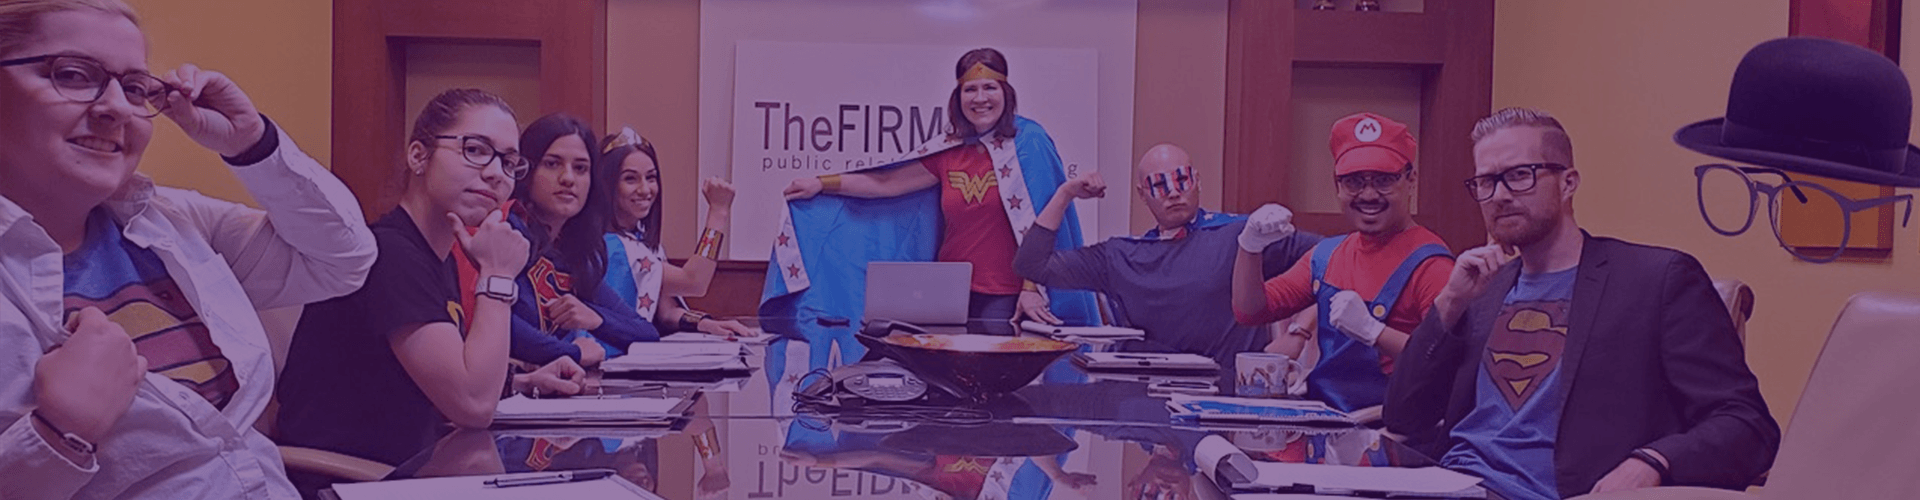 the firm public relations superheroes